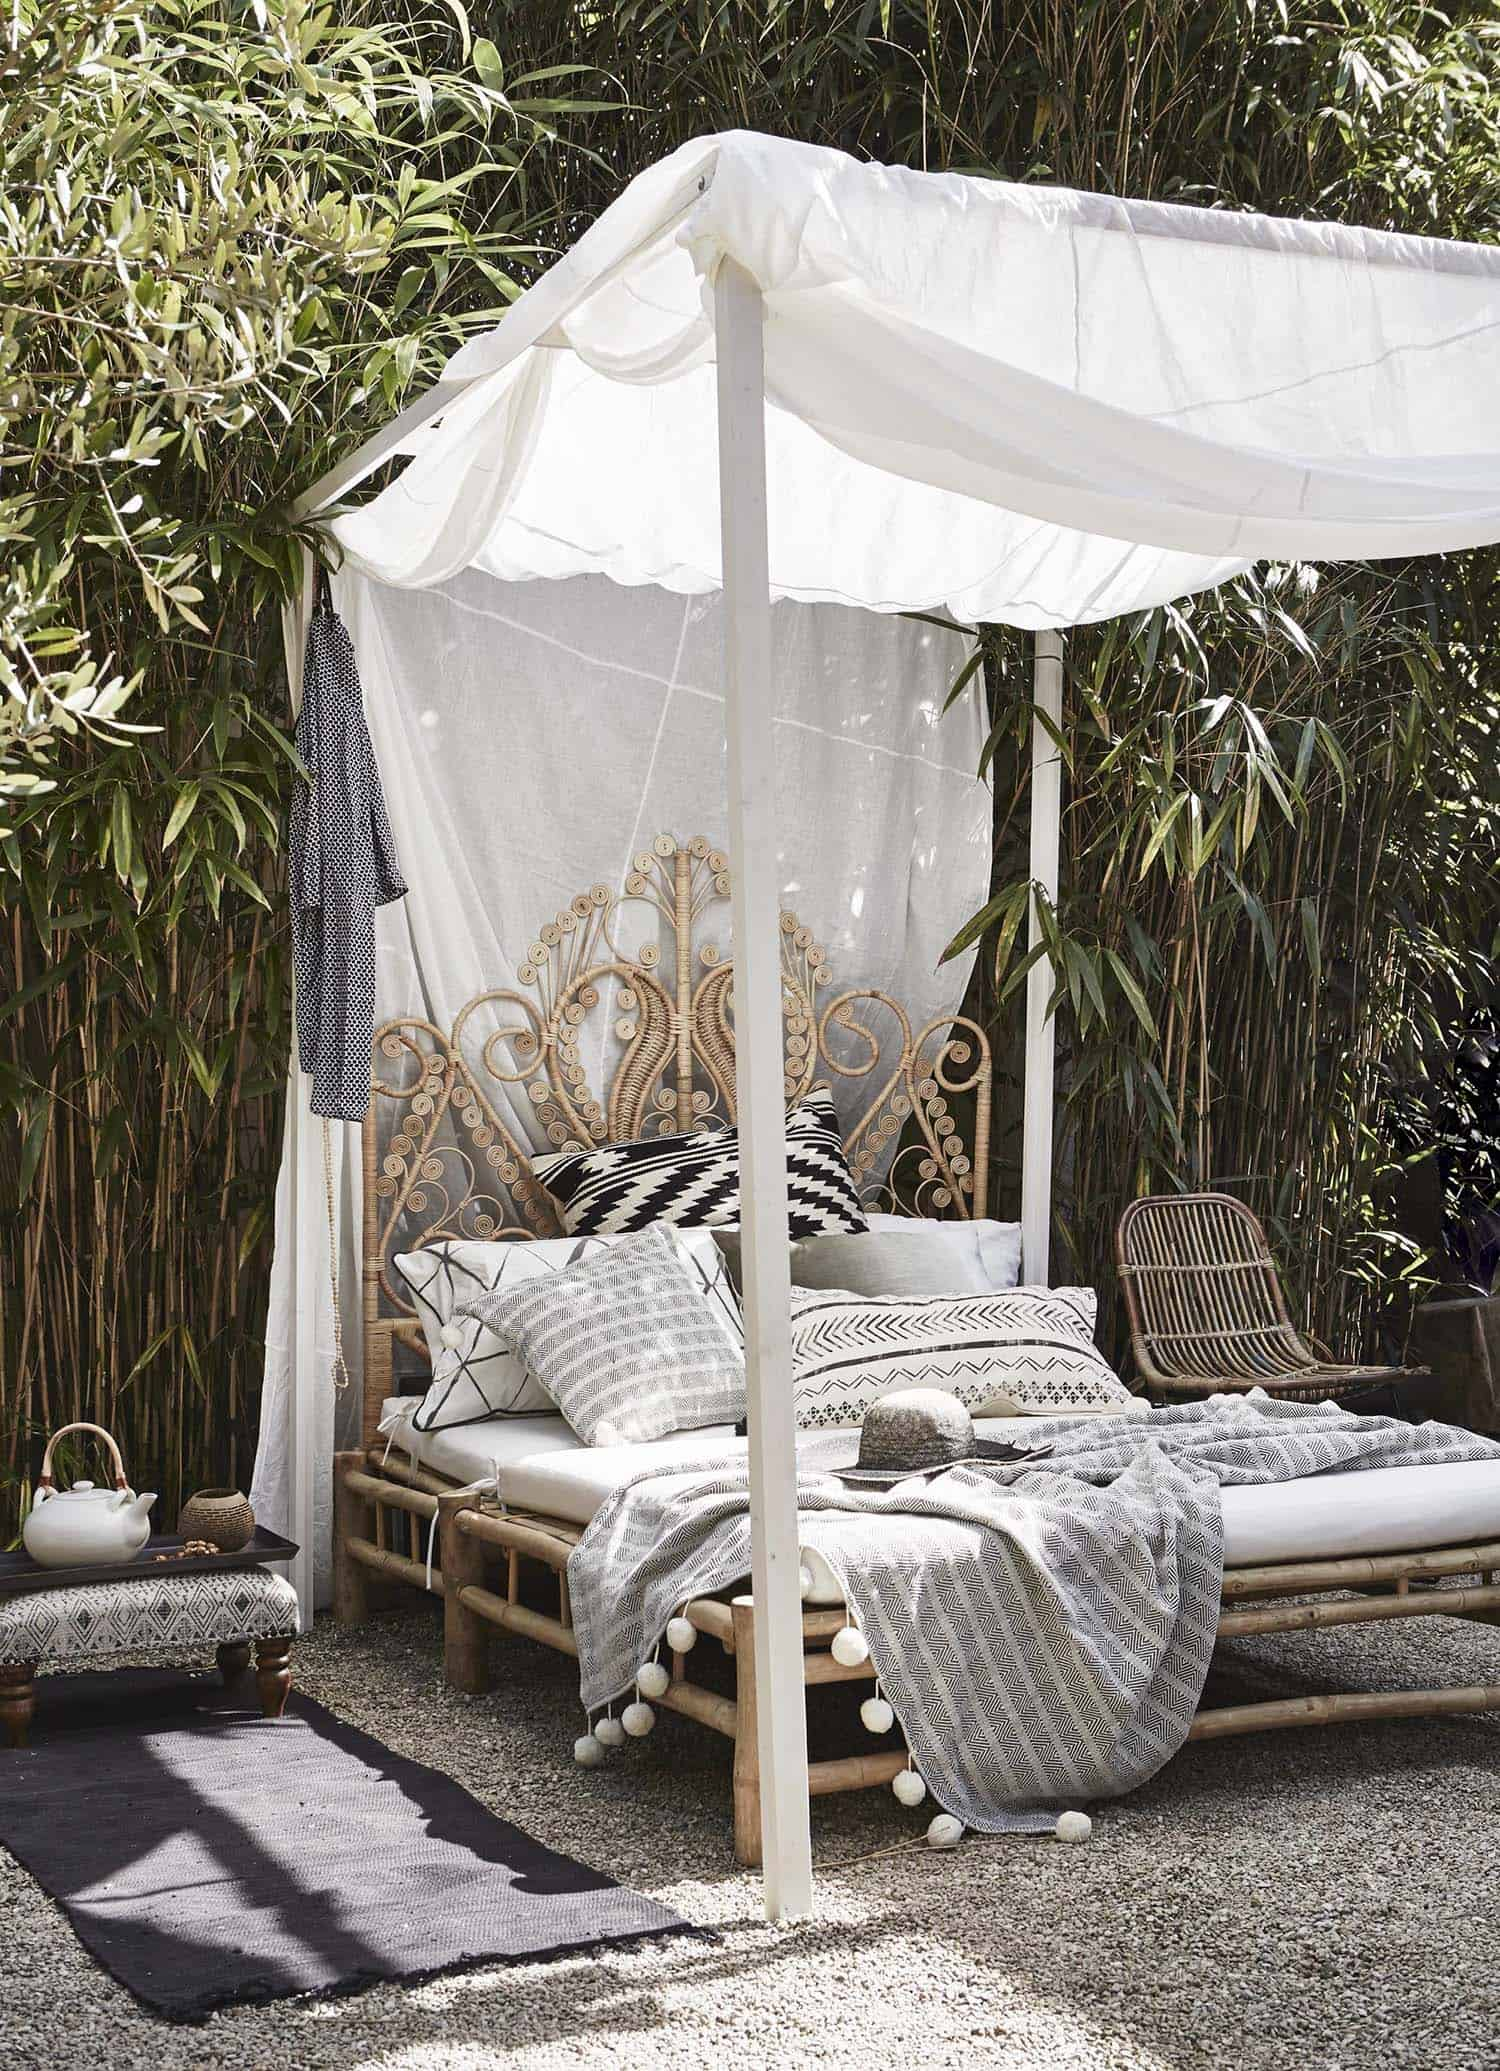 Bohemian Garden Design Ideas-25-1 Kindesign